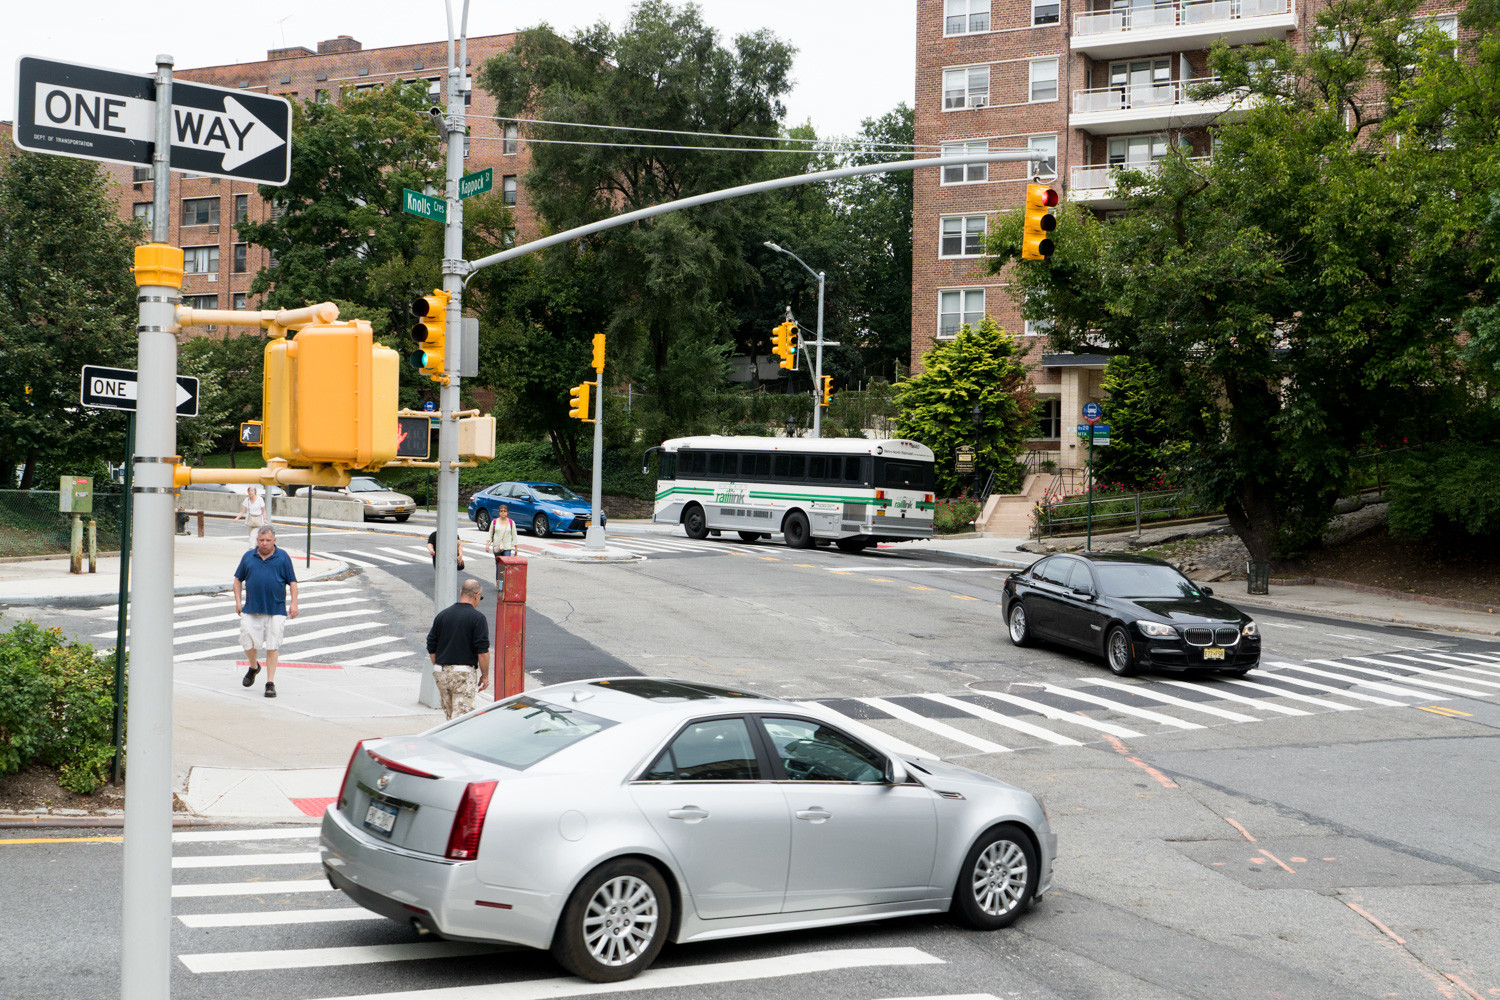 From plants on a nearby island that are too